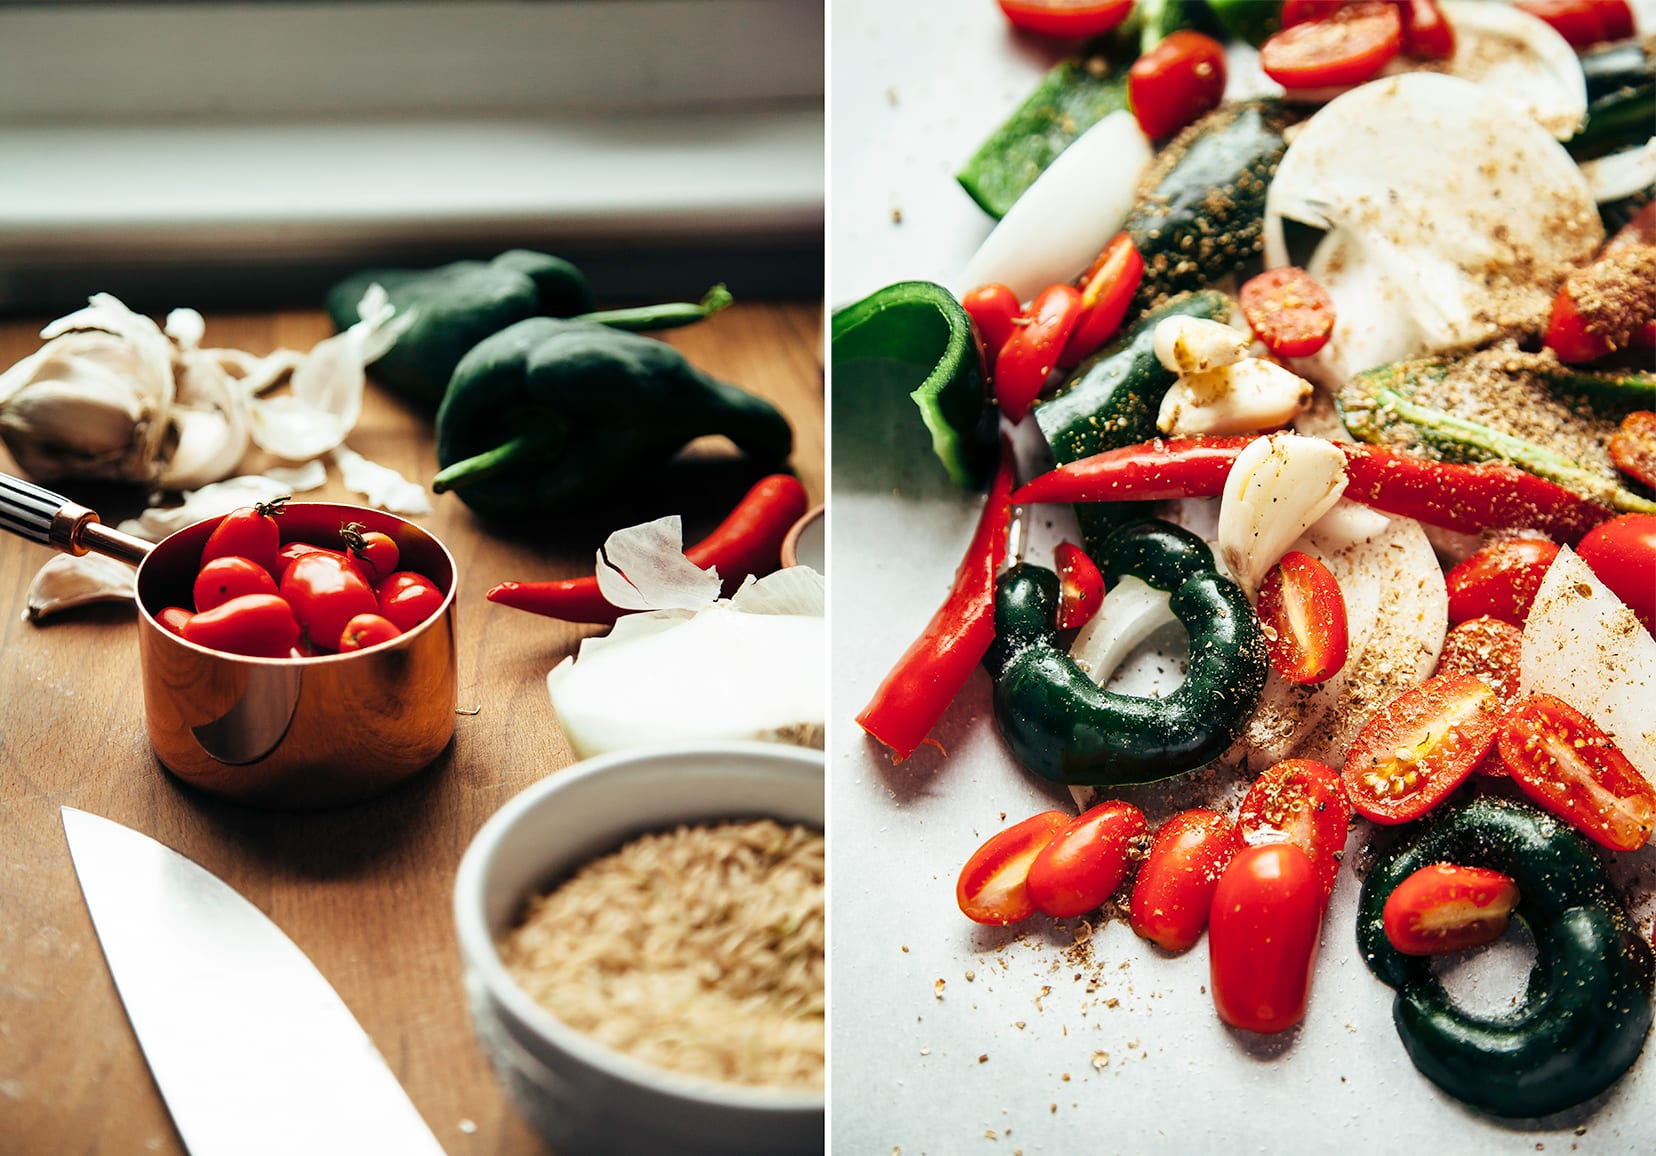 Two images show cherry tomatoes being measured and a bunch of chopped peppers, onions, and tomatoes on a parchment-lined baking sheet.